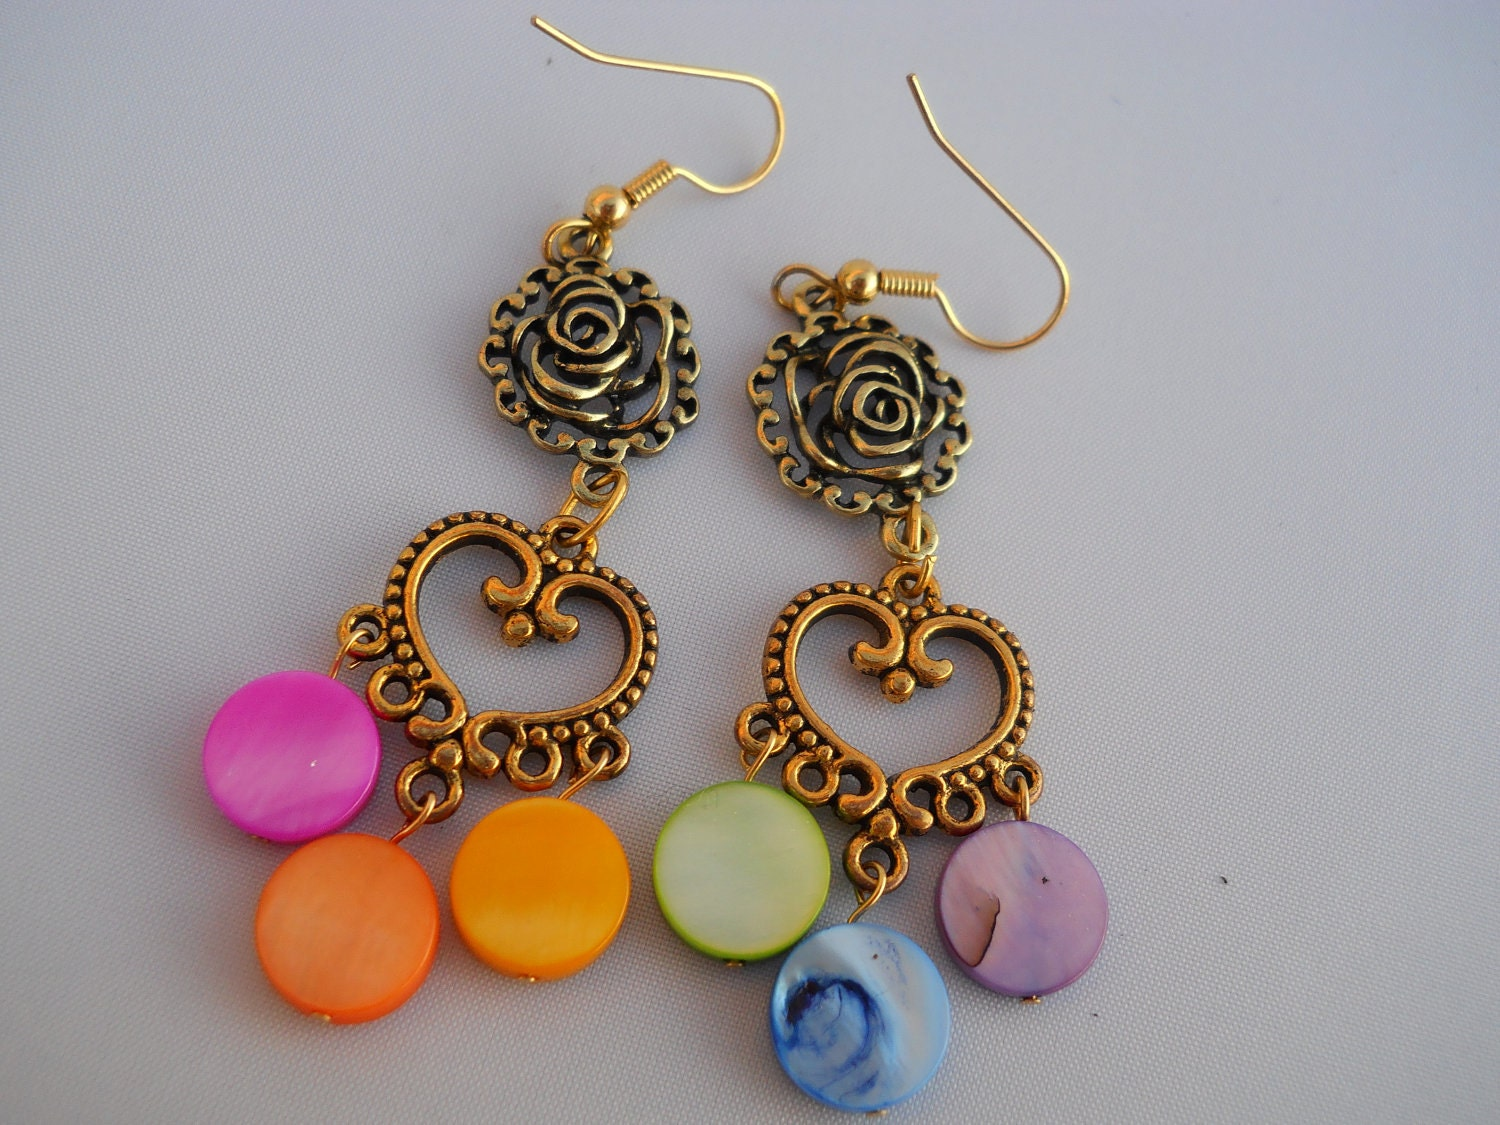 earrings: rose links, heart-shaped chandeliers, rainbow mother-of-pearl coins